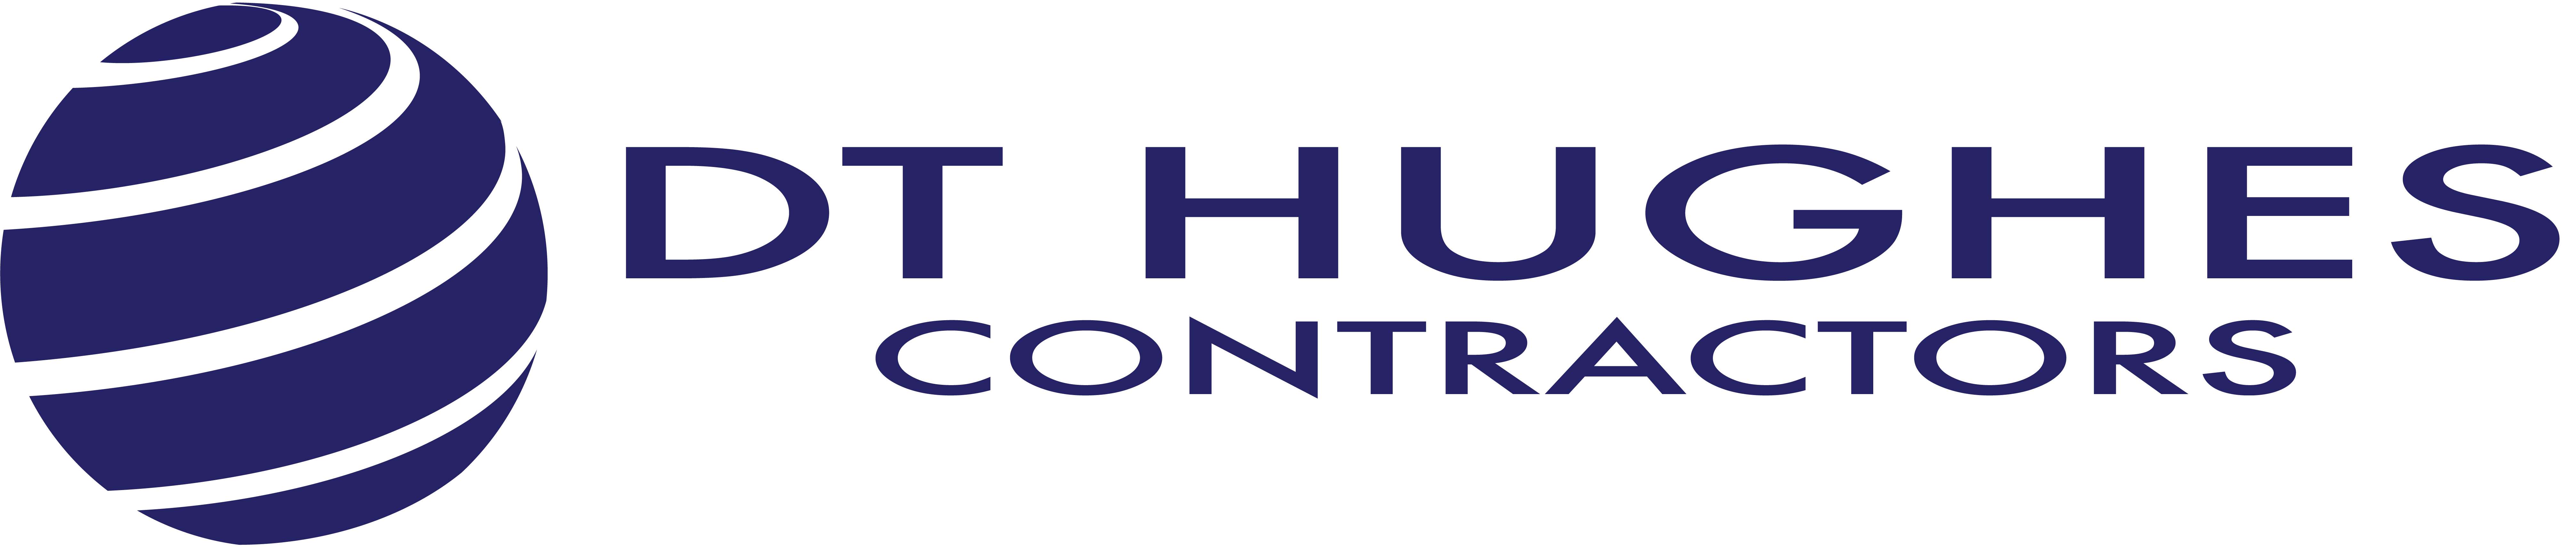 DT Hughes Contractors Ltd